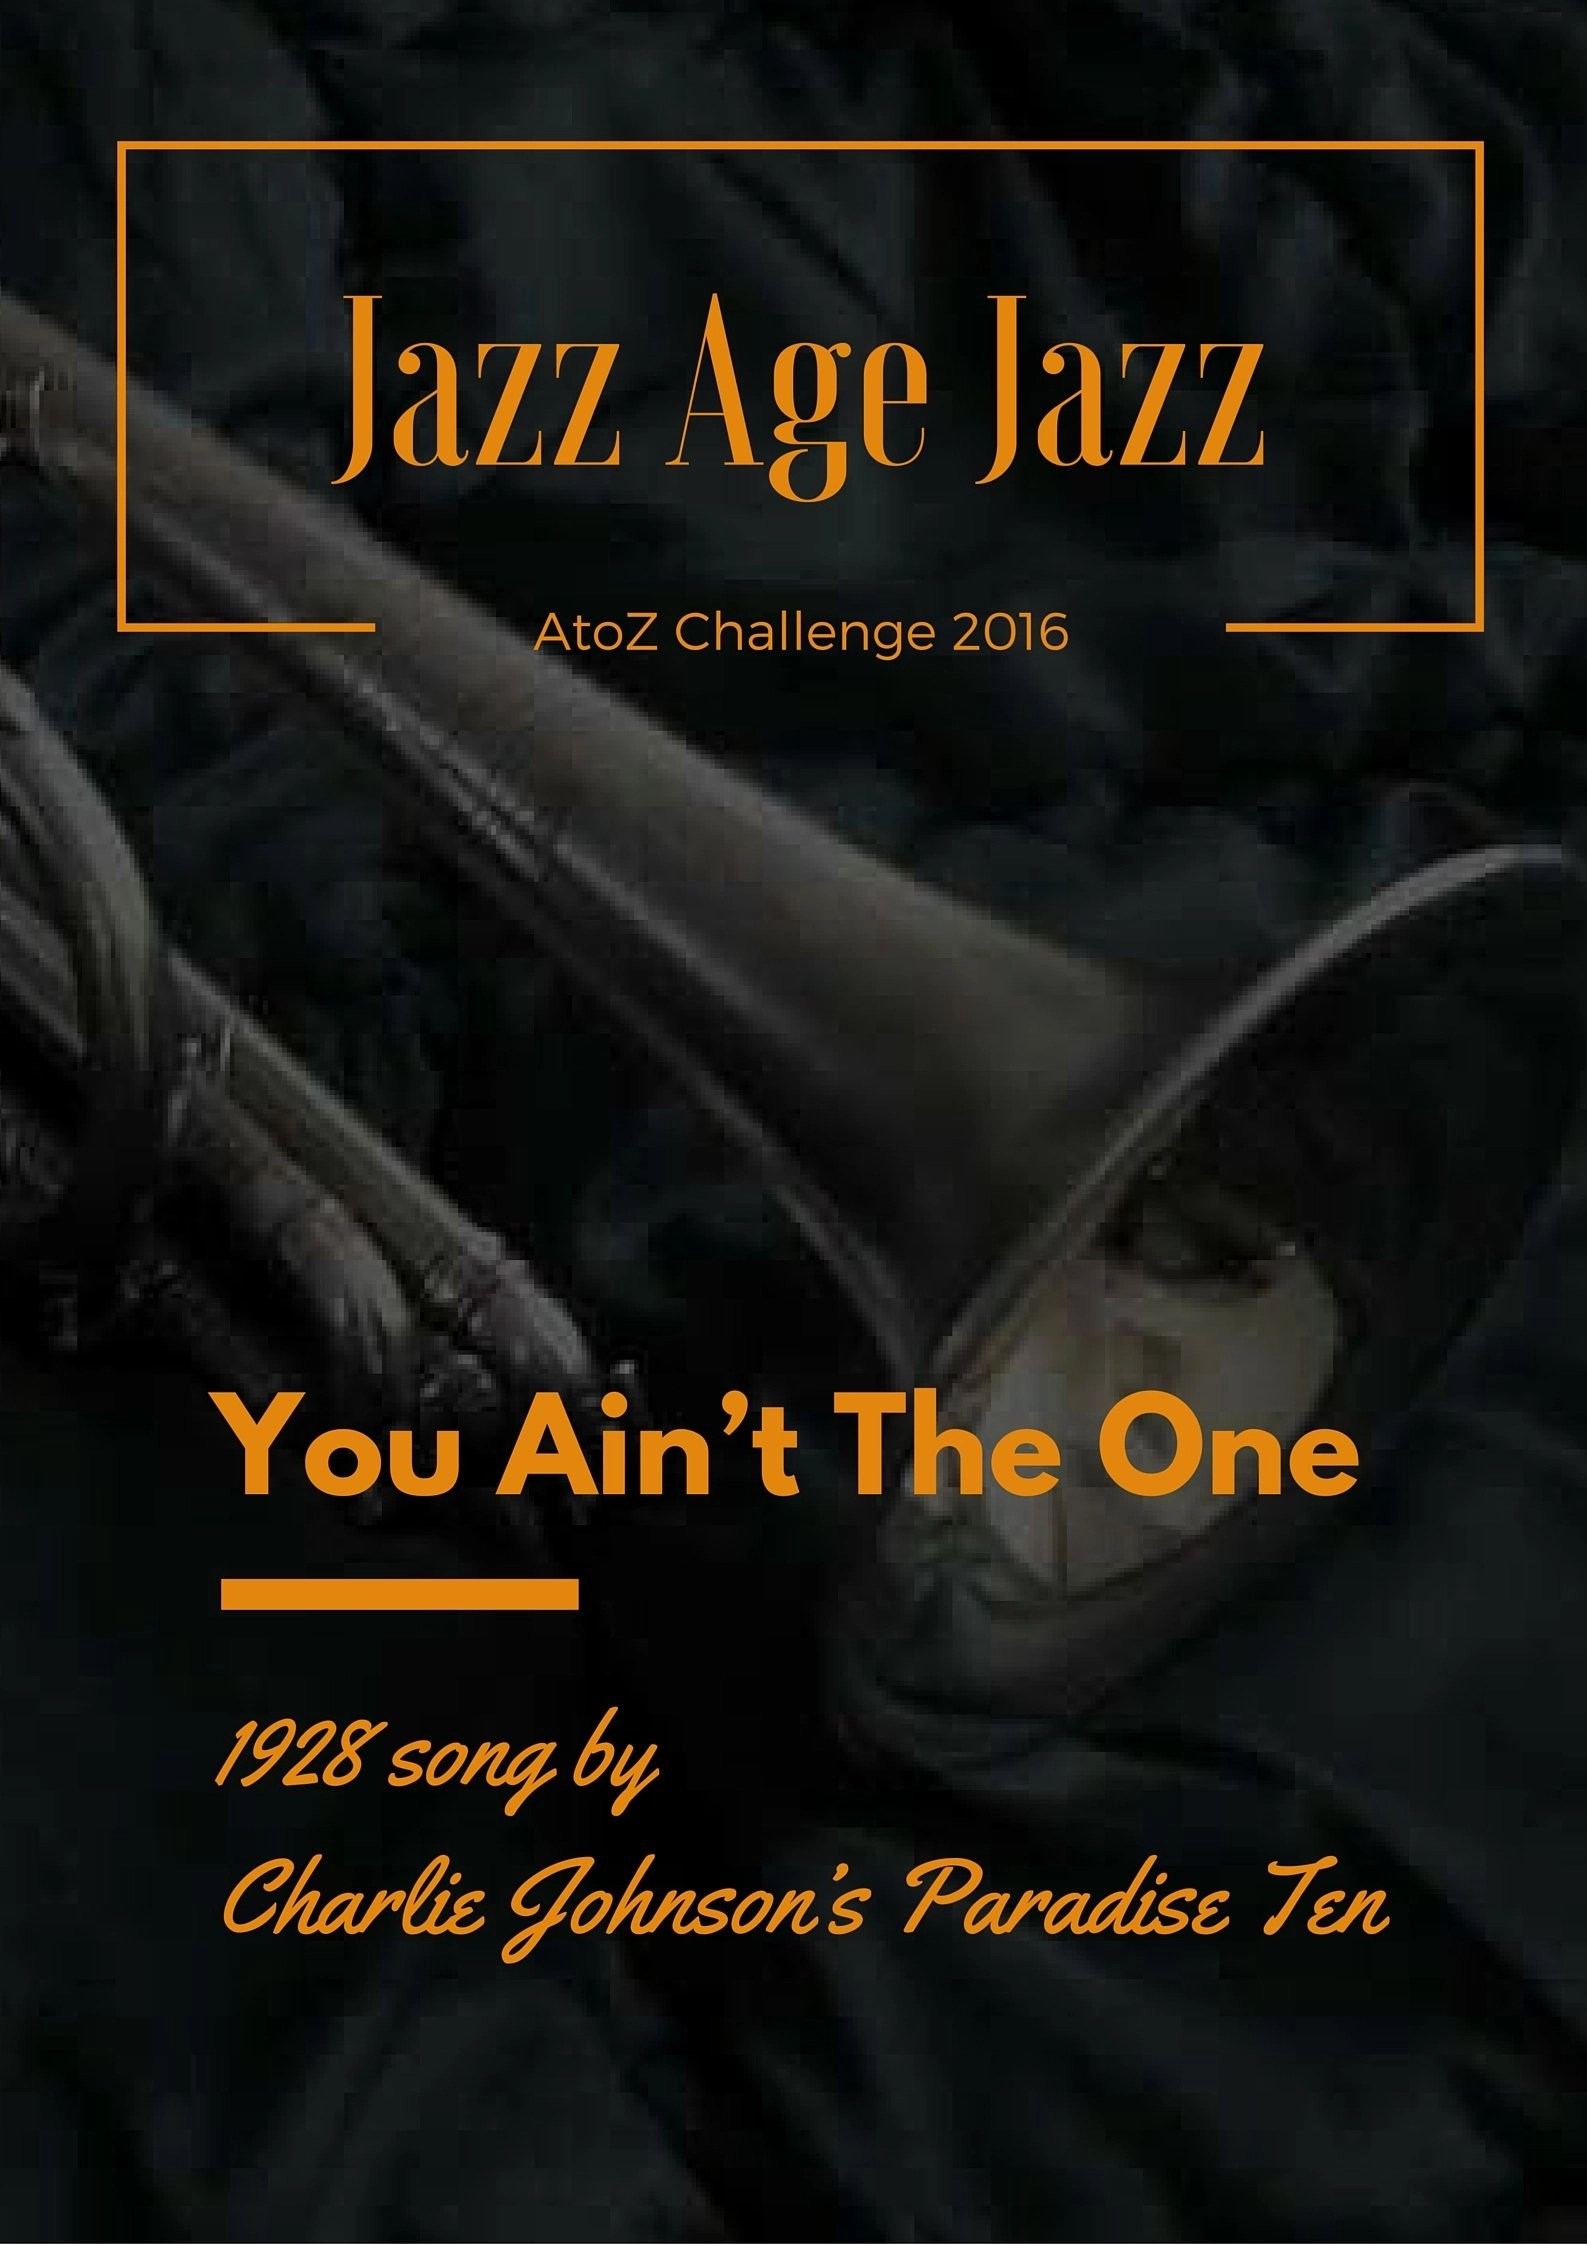 Jazz Age Jazz - You Ain't the One: 1928 song by Charlie Johnson's Paradise Ten